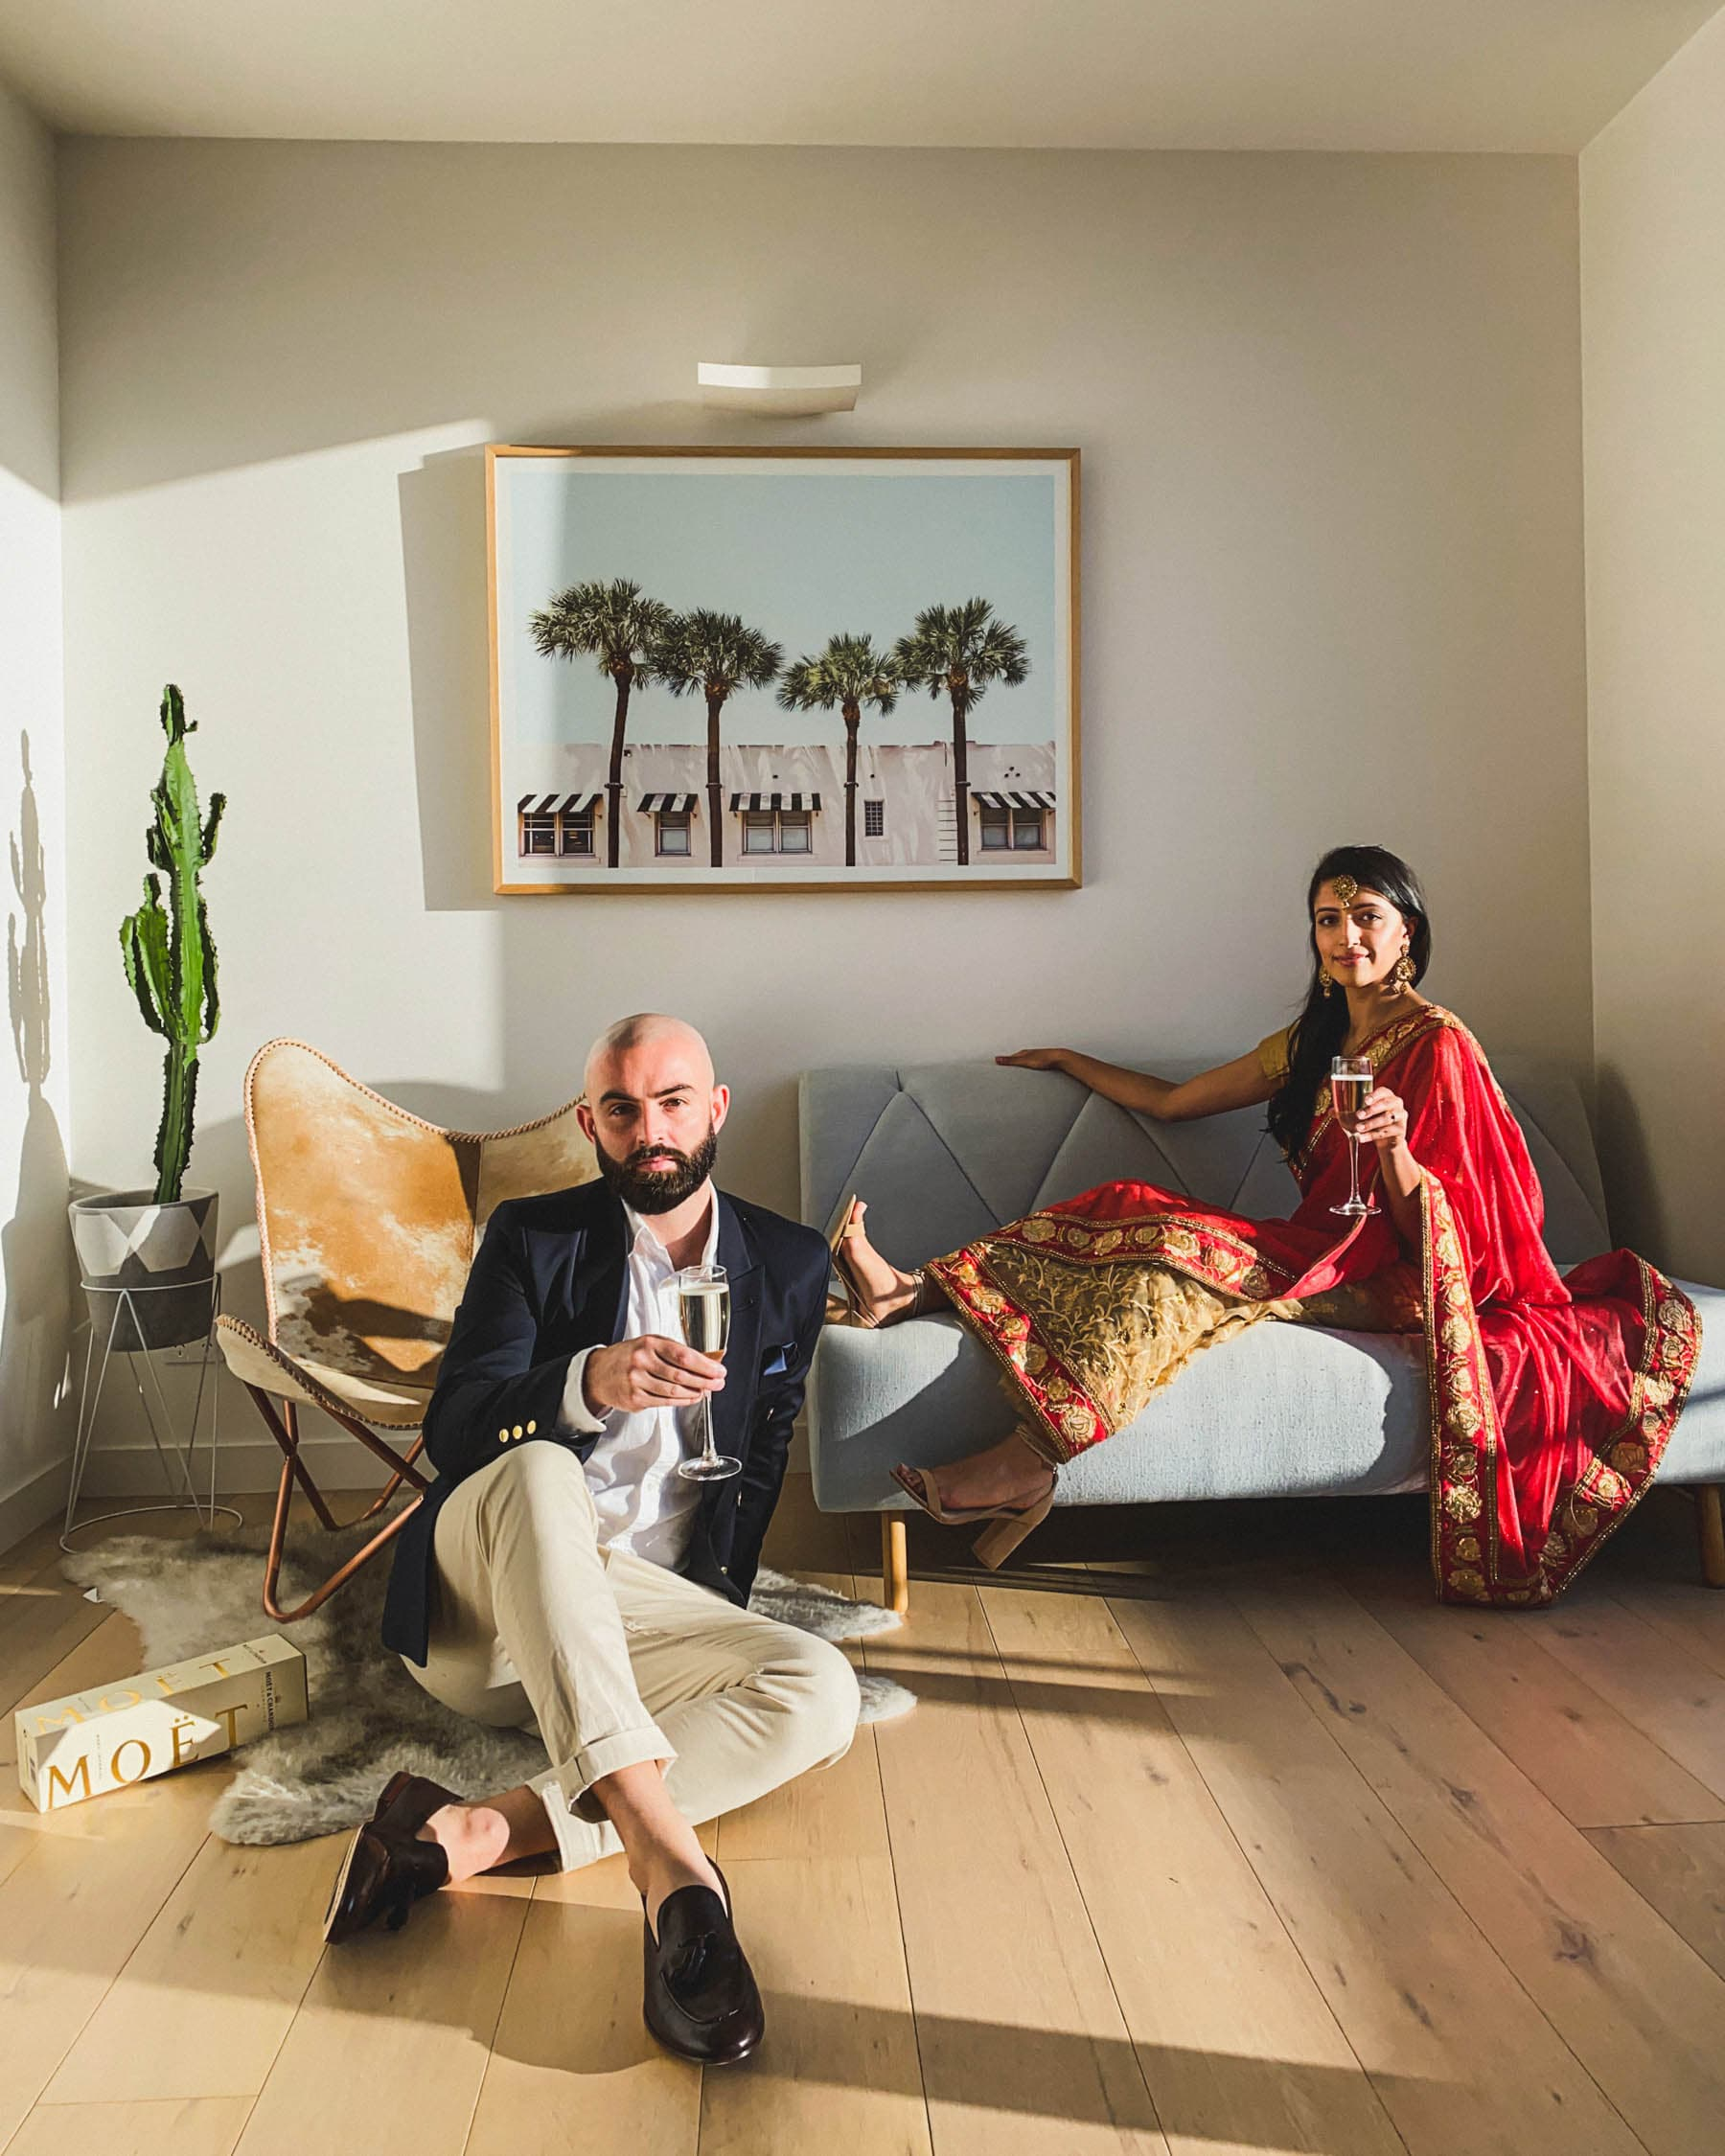 Are you postponing your wedding due to the Coronavirus? Here's how to postpone your Indian wedding amid Covid19. Melbourne bride to be, Shilpa shares her wedding postponement story on The Maharani Diaries. Her Indian wedding is all set to take place at Quat Quatta next year.